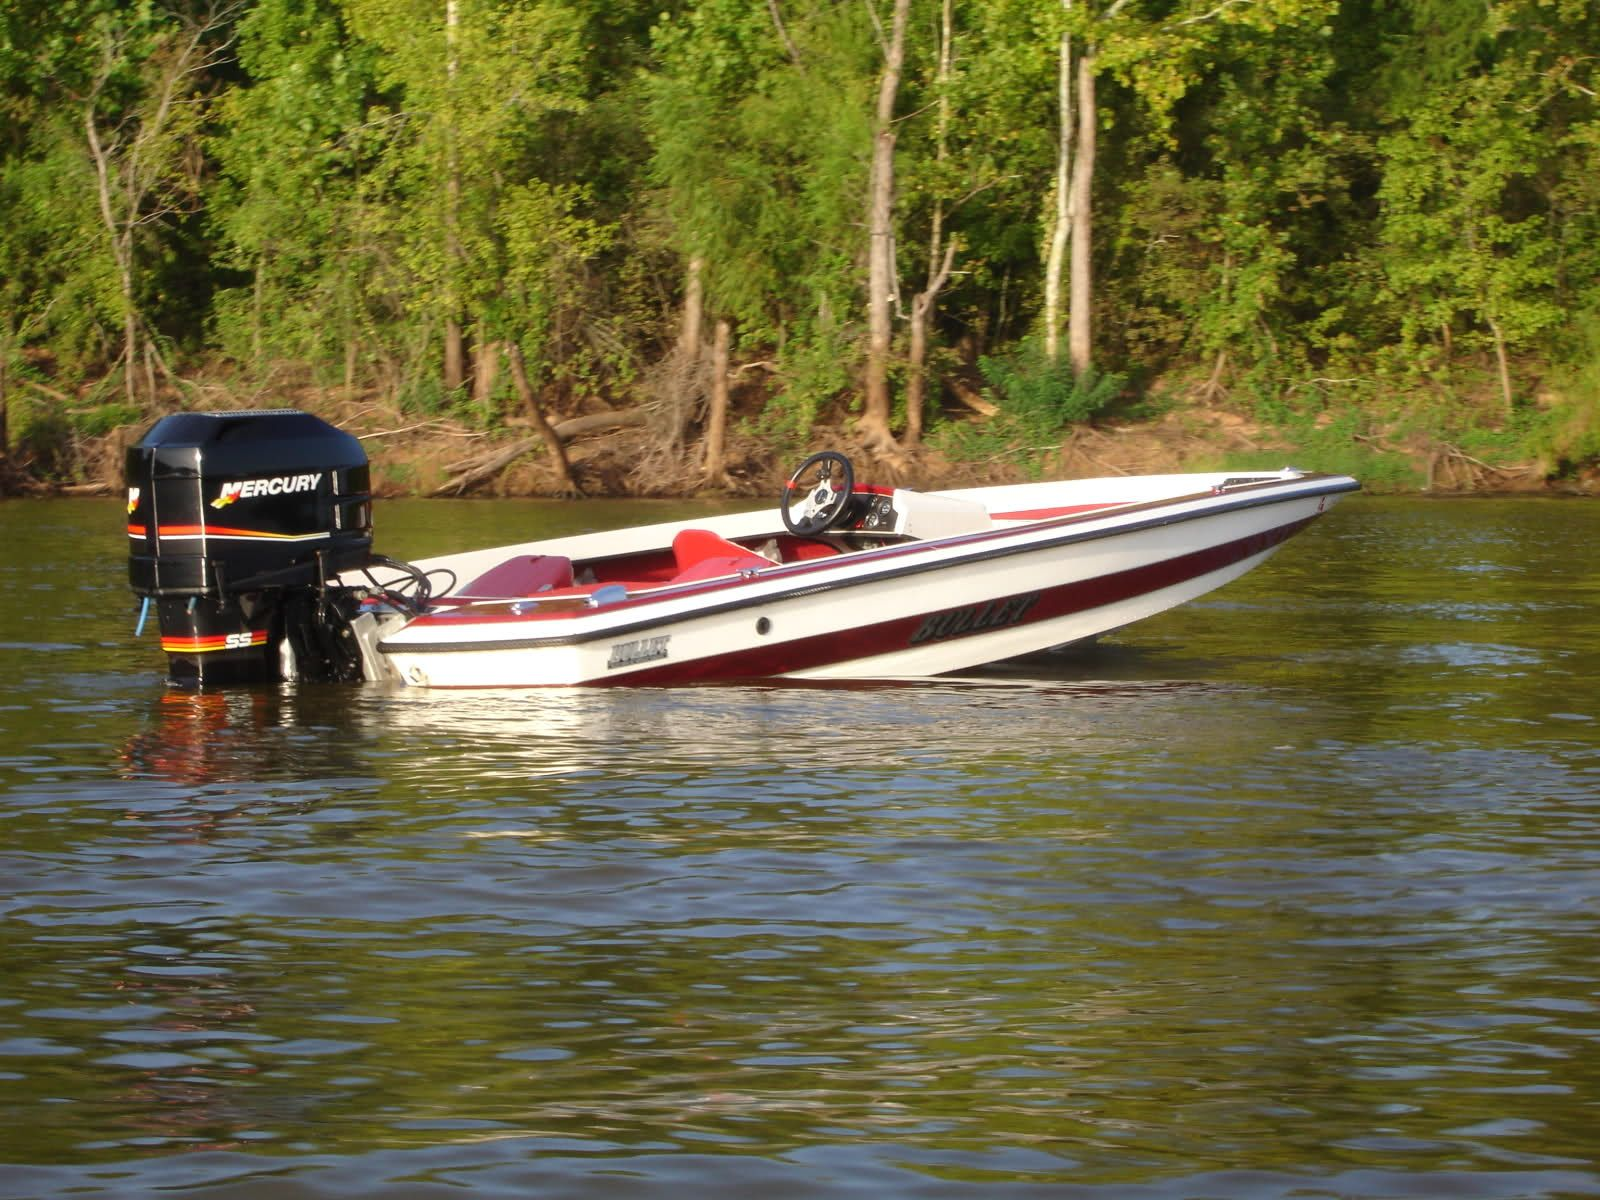 Best Race Boats Images On Pinterest - Bullet bass boat decals